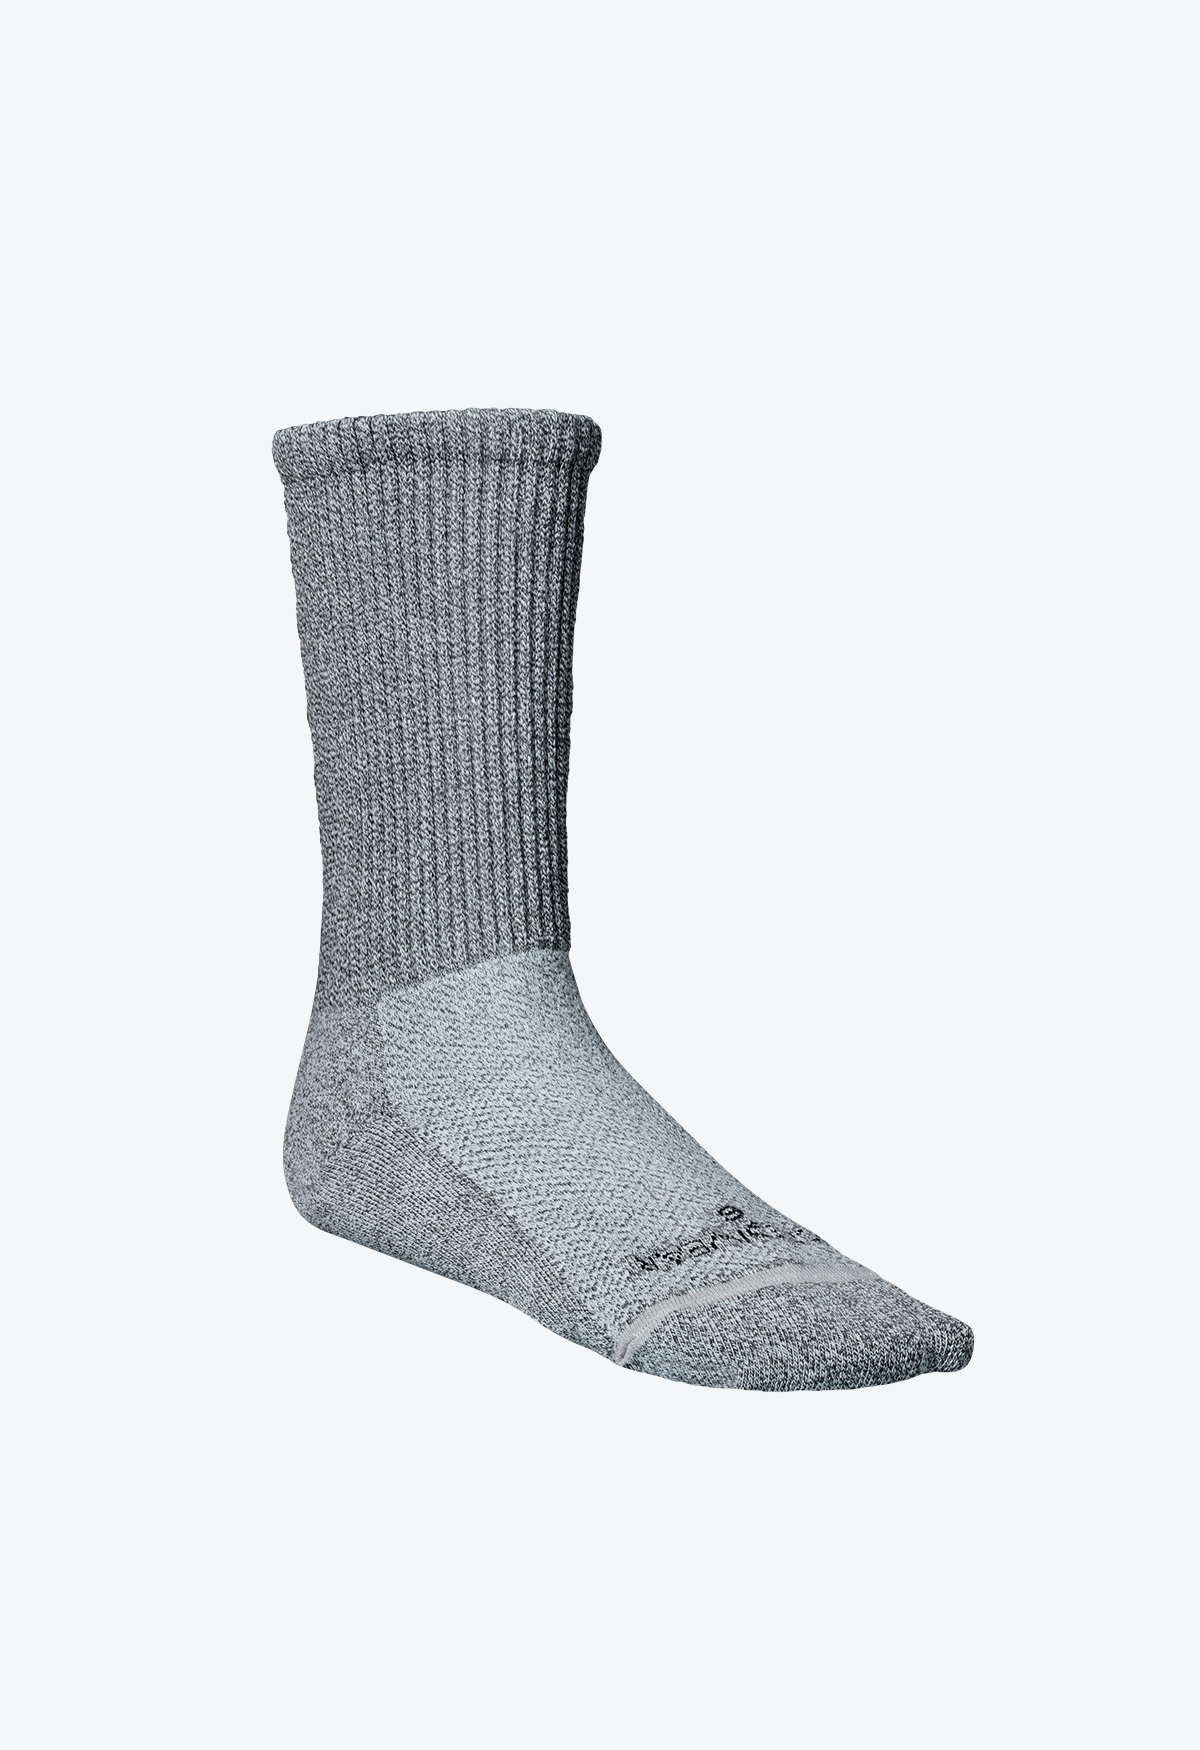 Incrediwear Circulation Socks